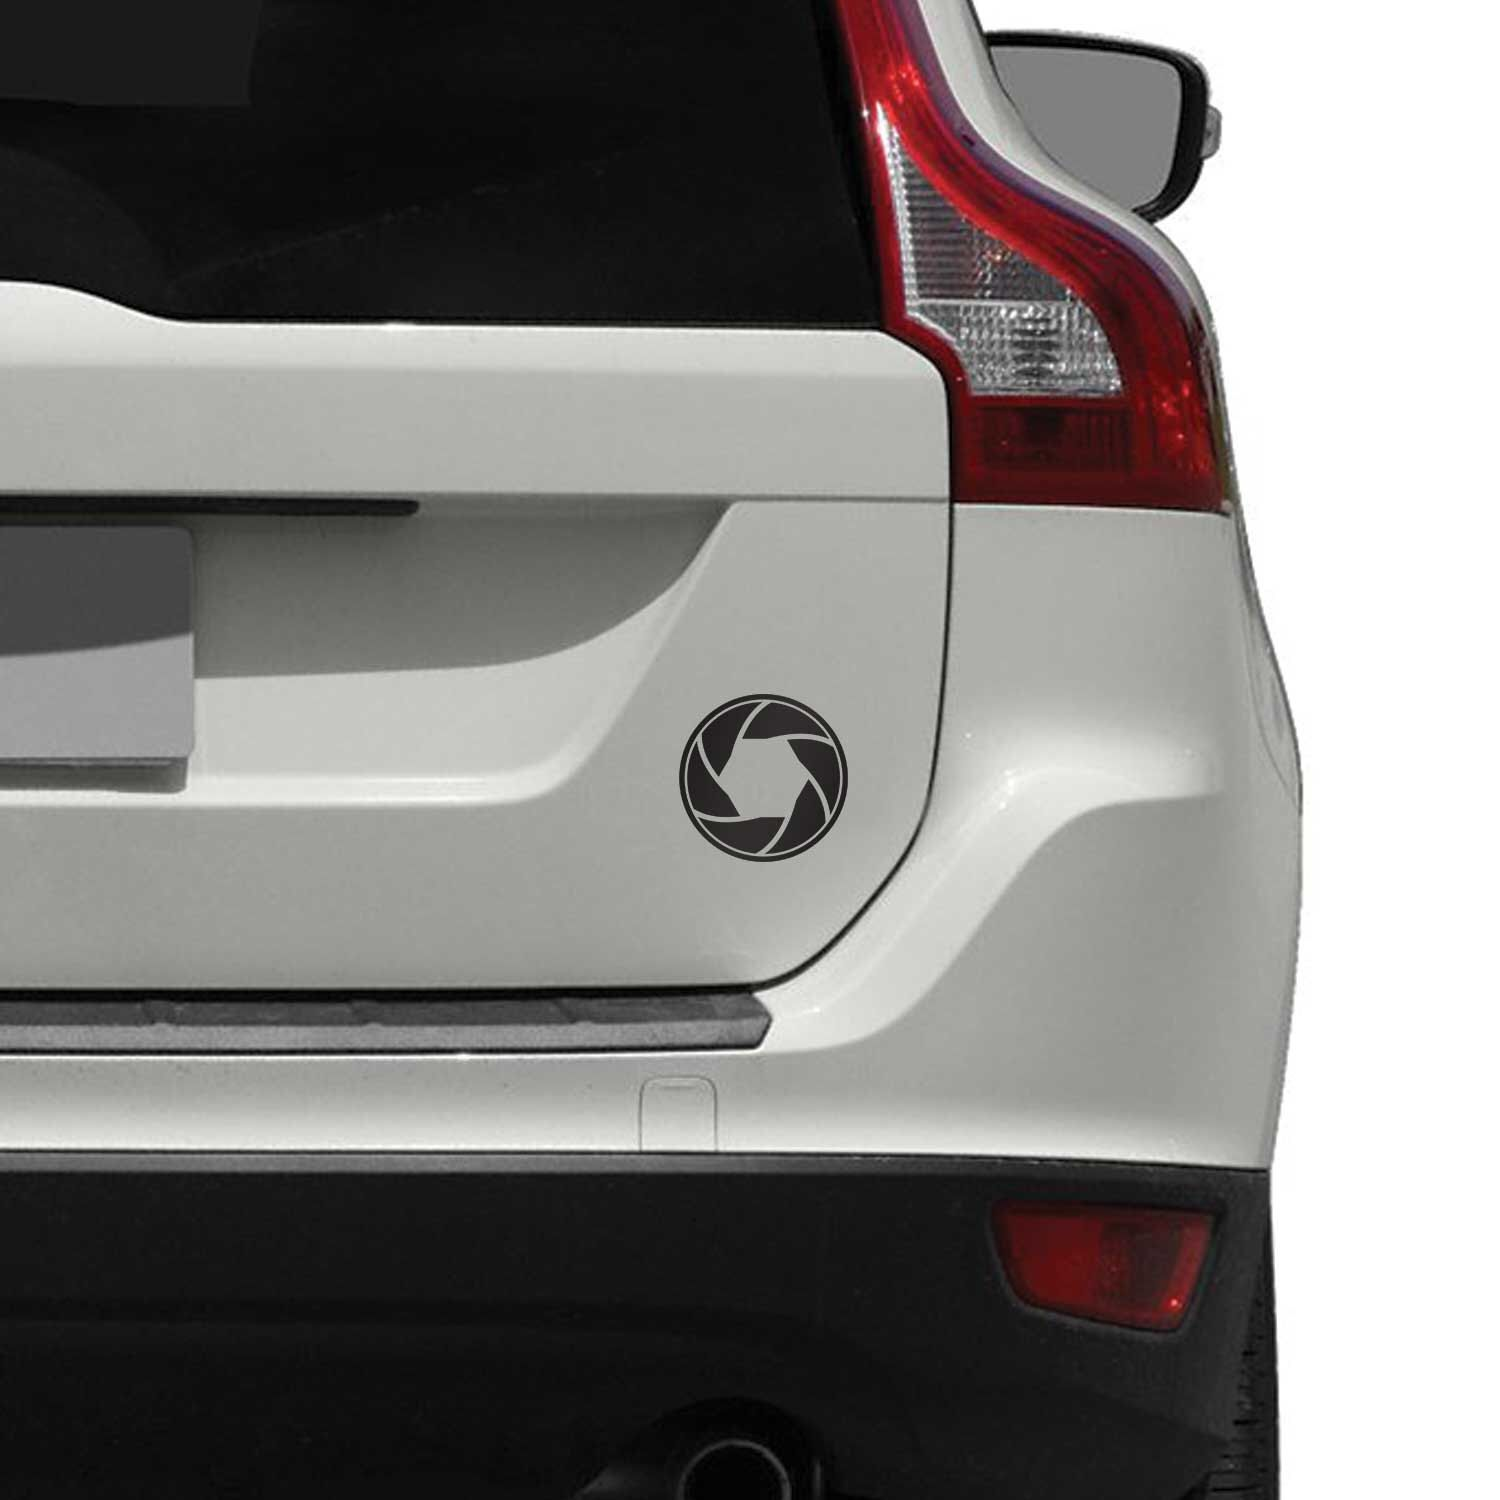 Camera Aperture Car Decal for Cars, Trucks and Motorcycles by ...